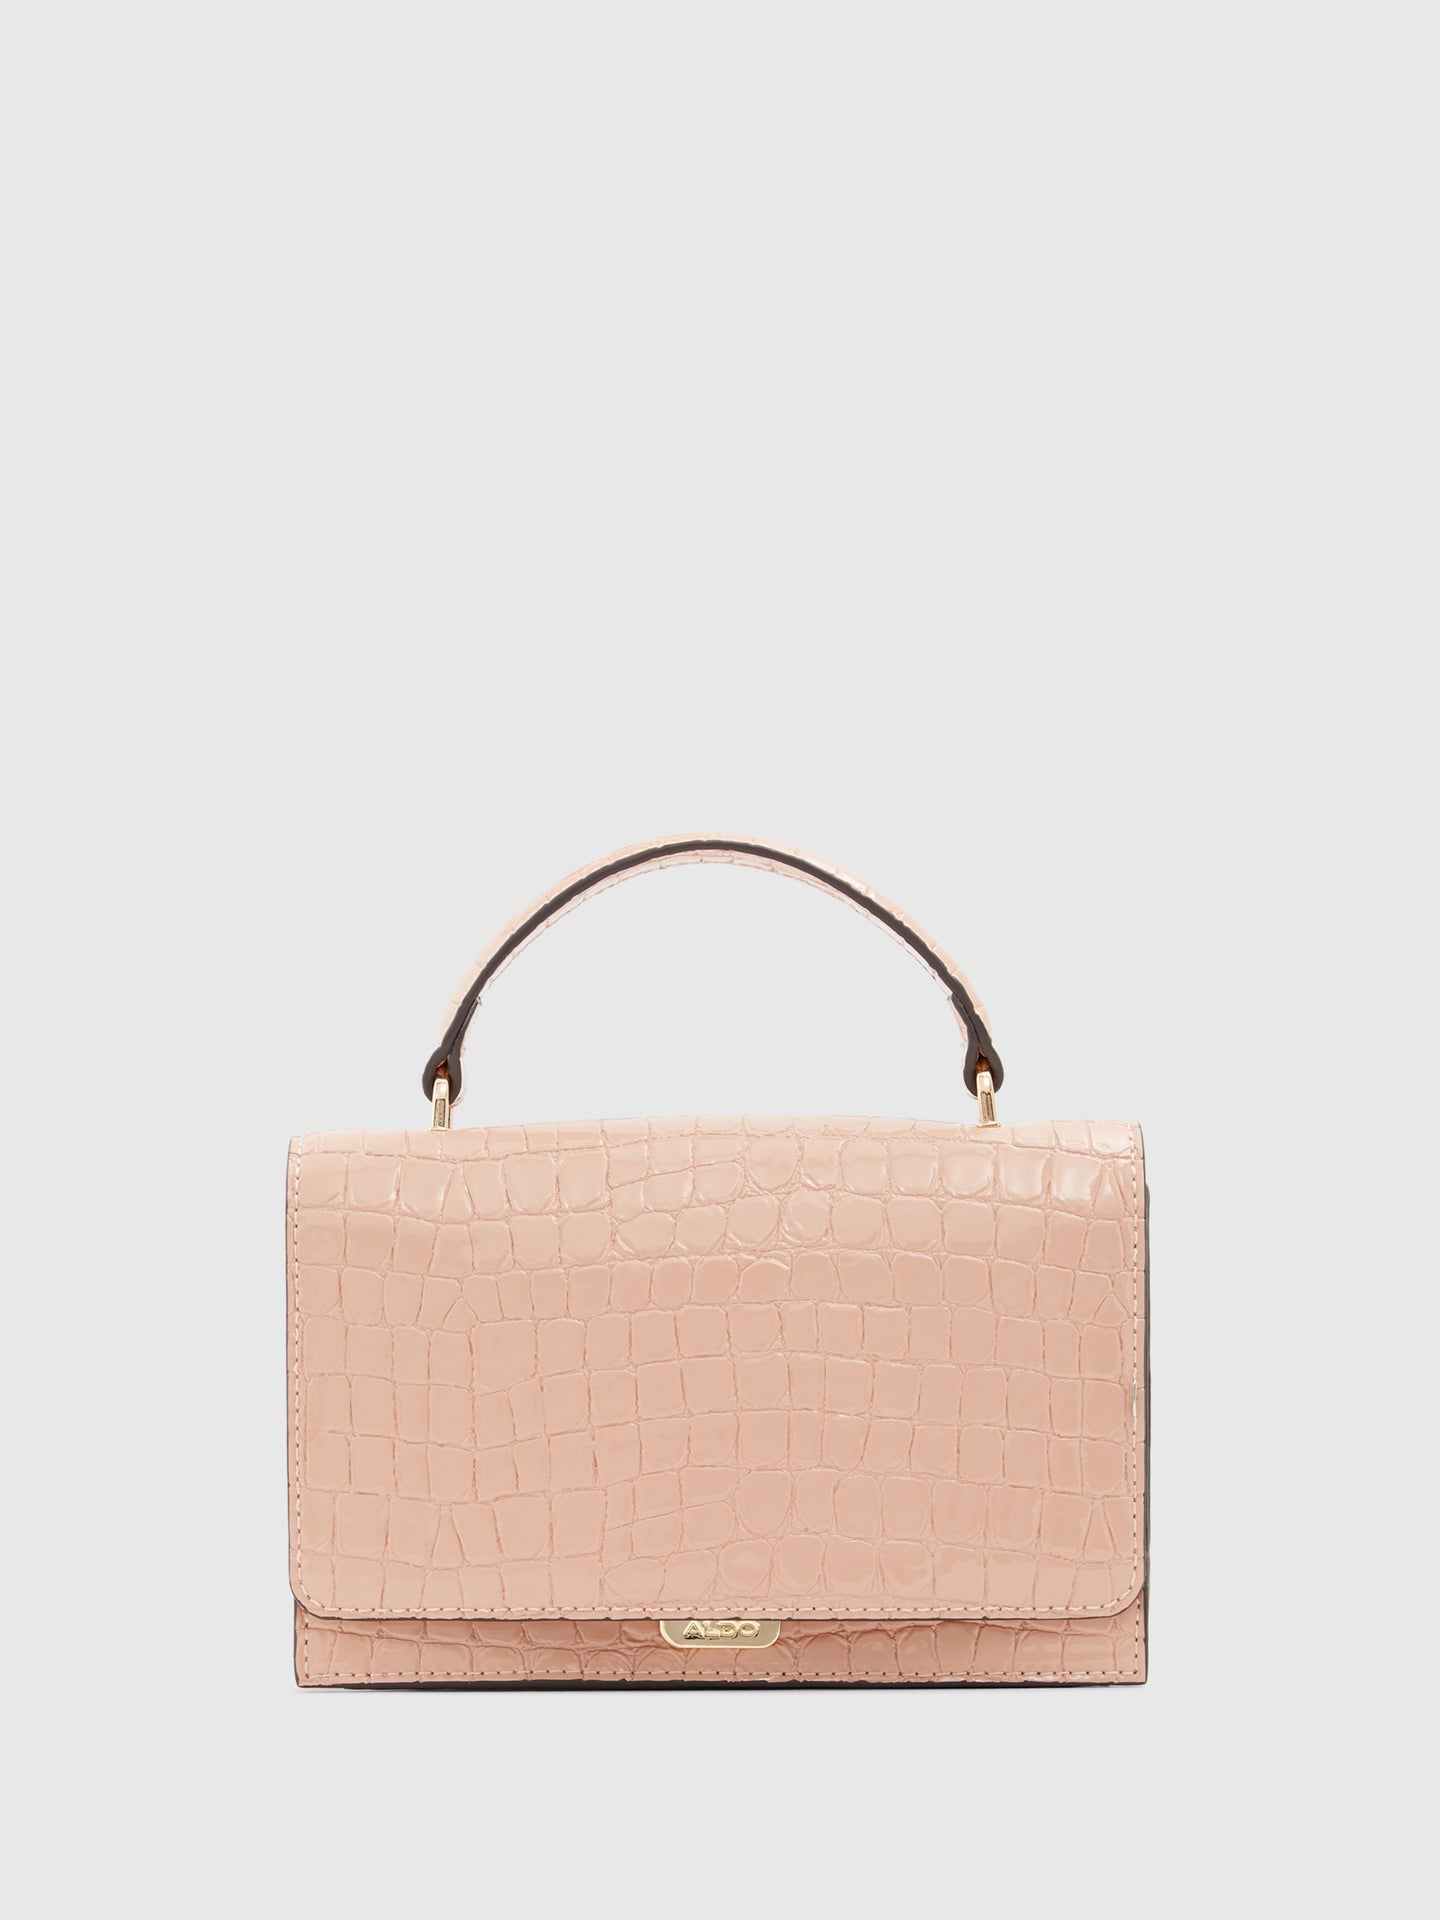 Aldo LightPink Handbag